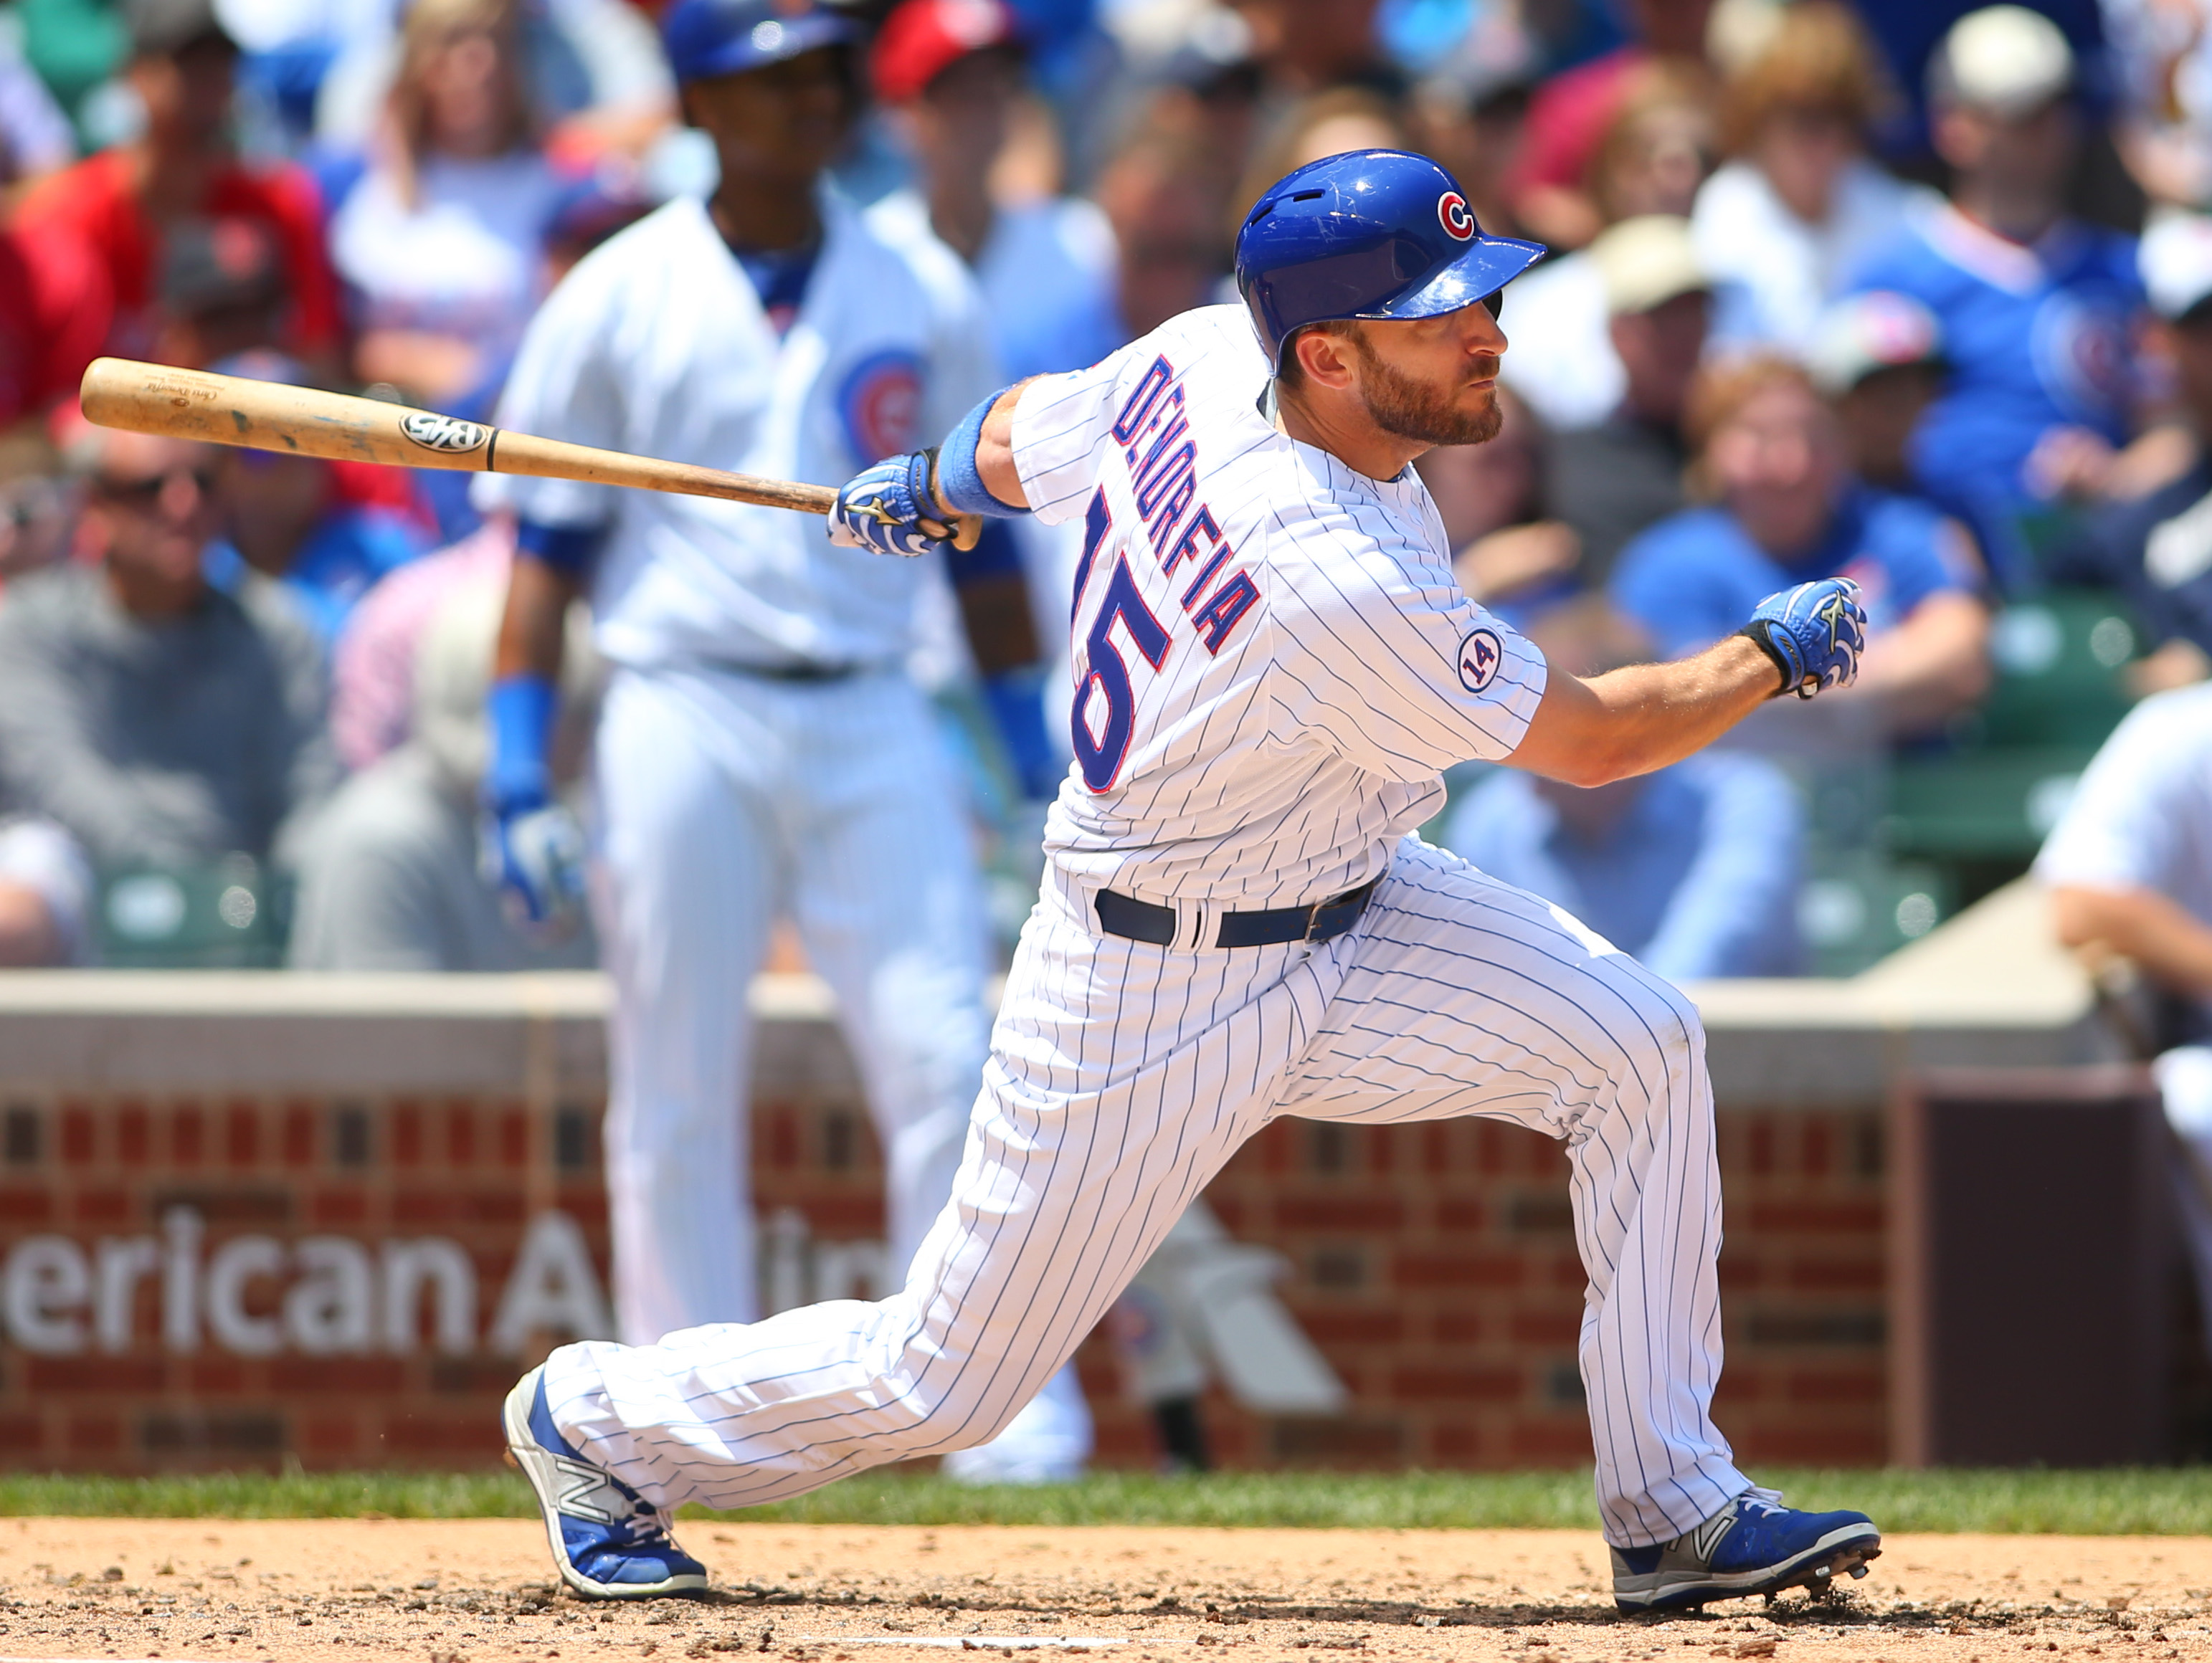 8684629-mlb-game-one-st.-louis-cardinals-at-chicago-cubs